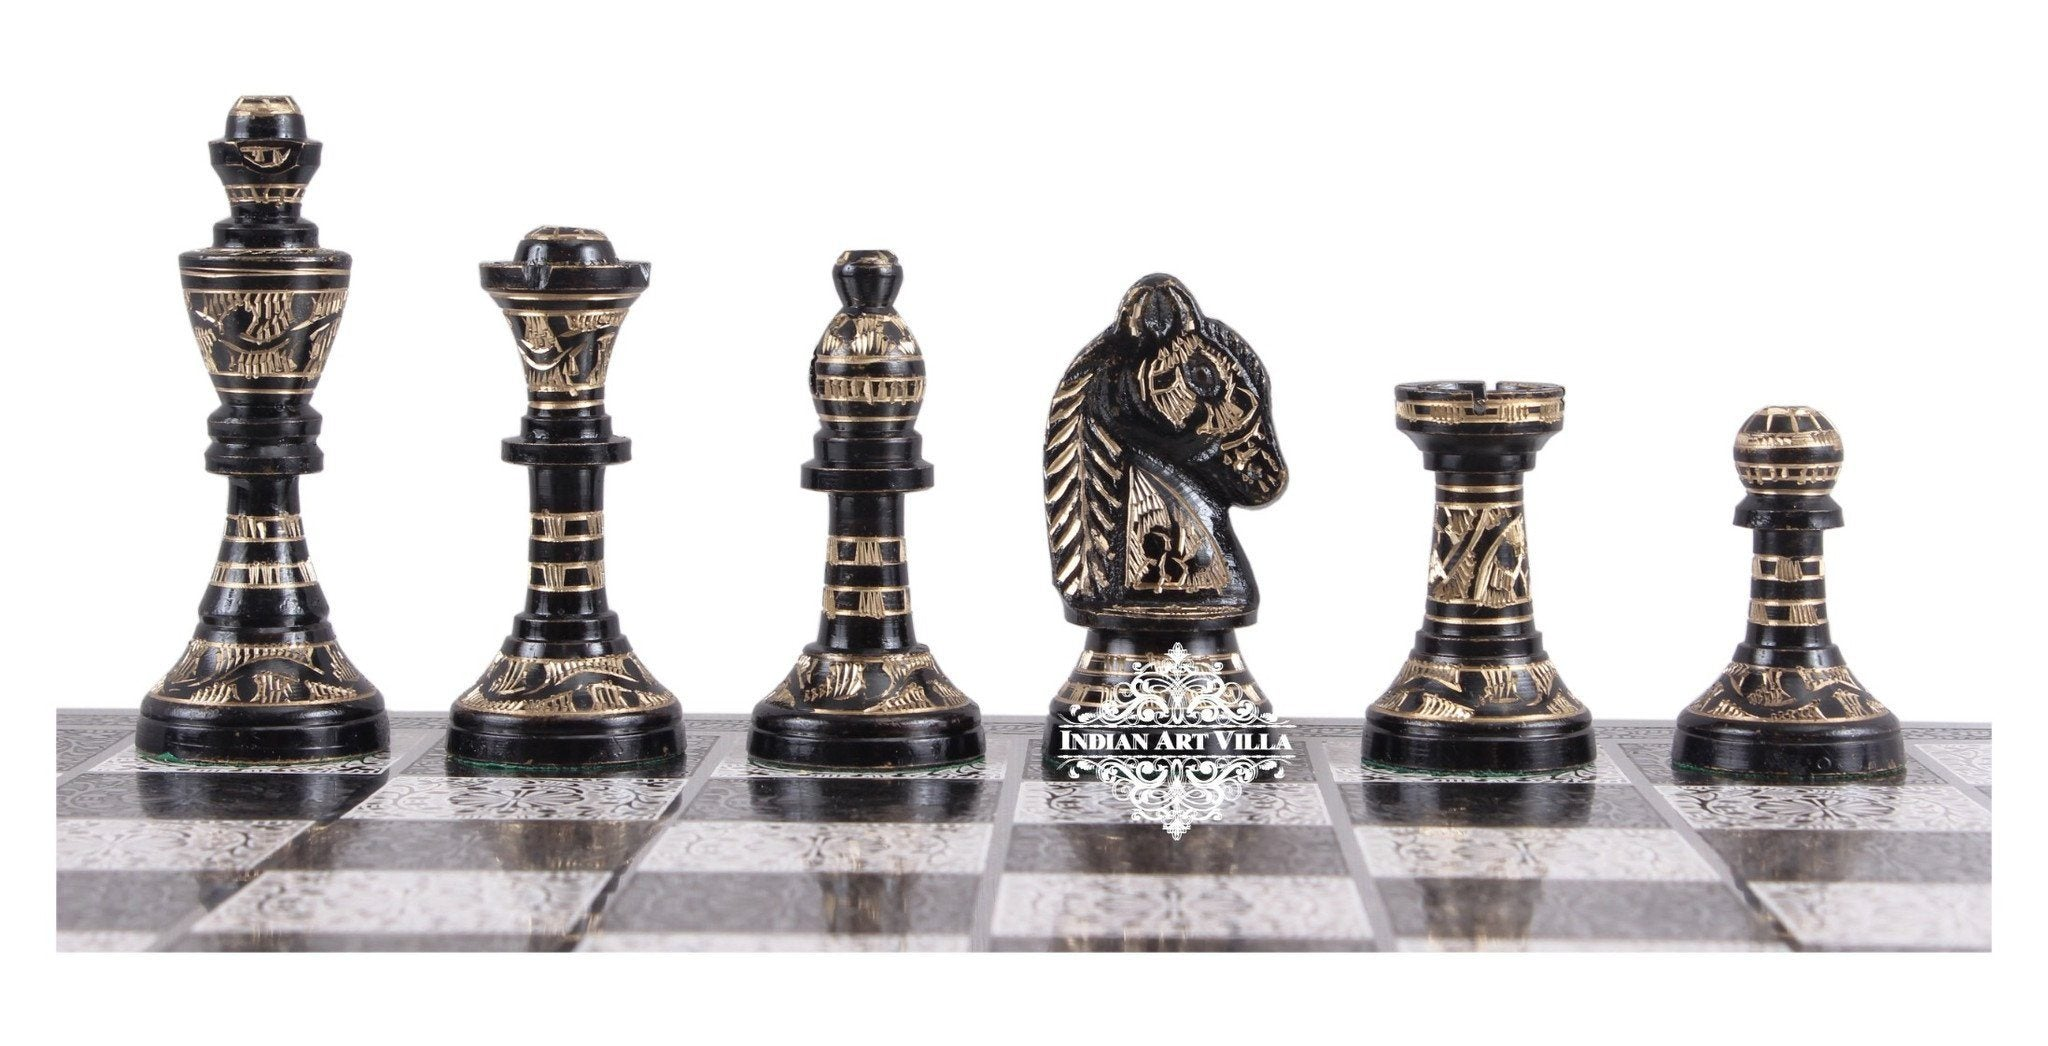 Collectible Brass Chess with Silver & Black Pieces